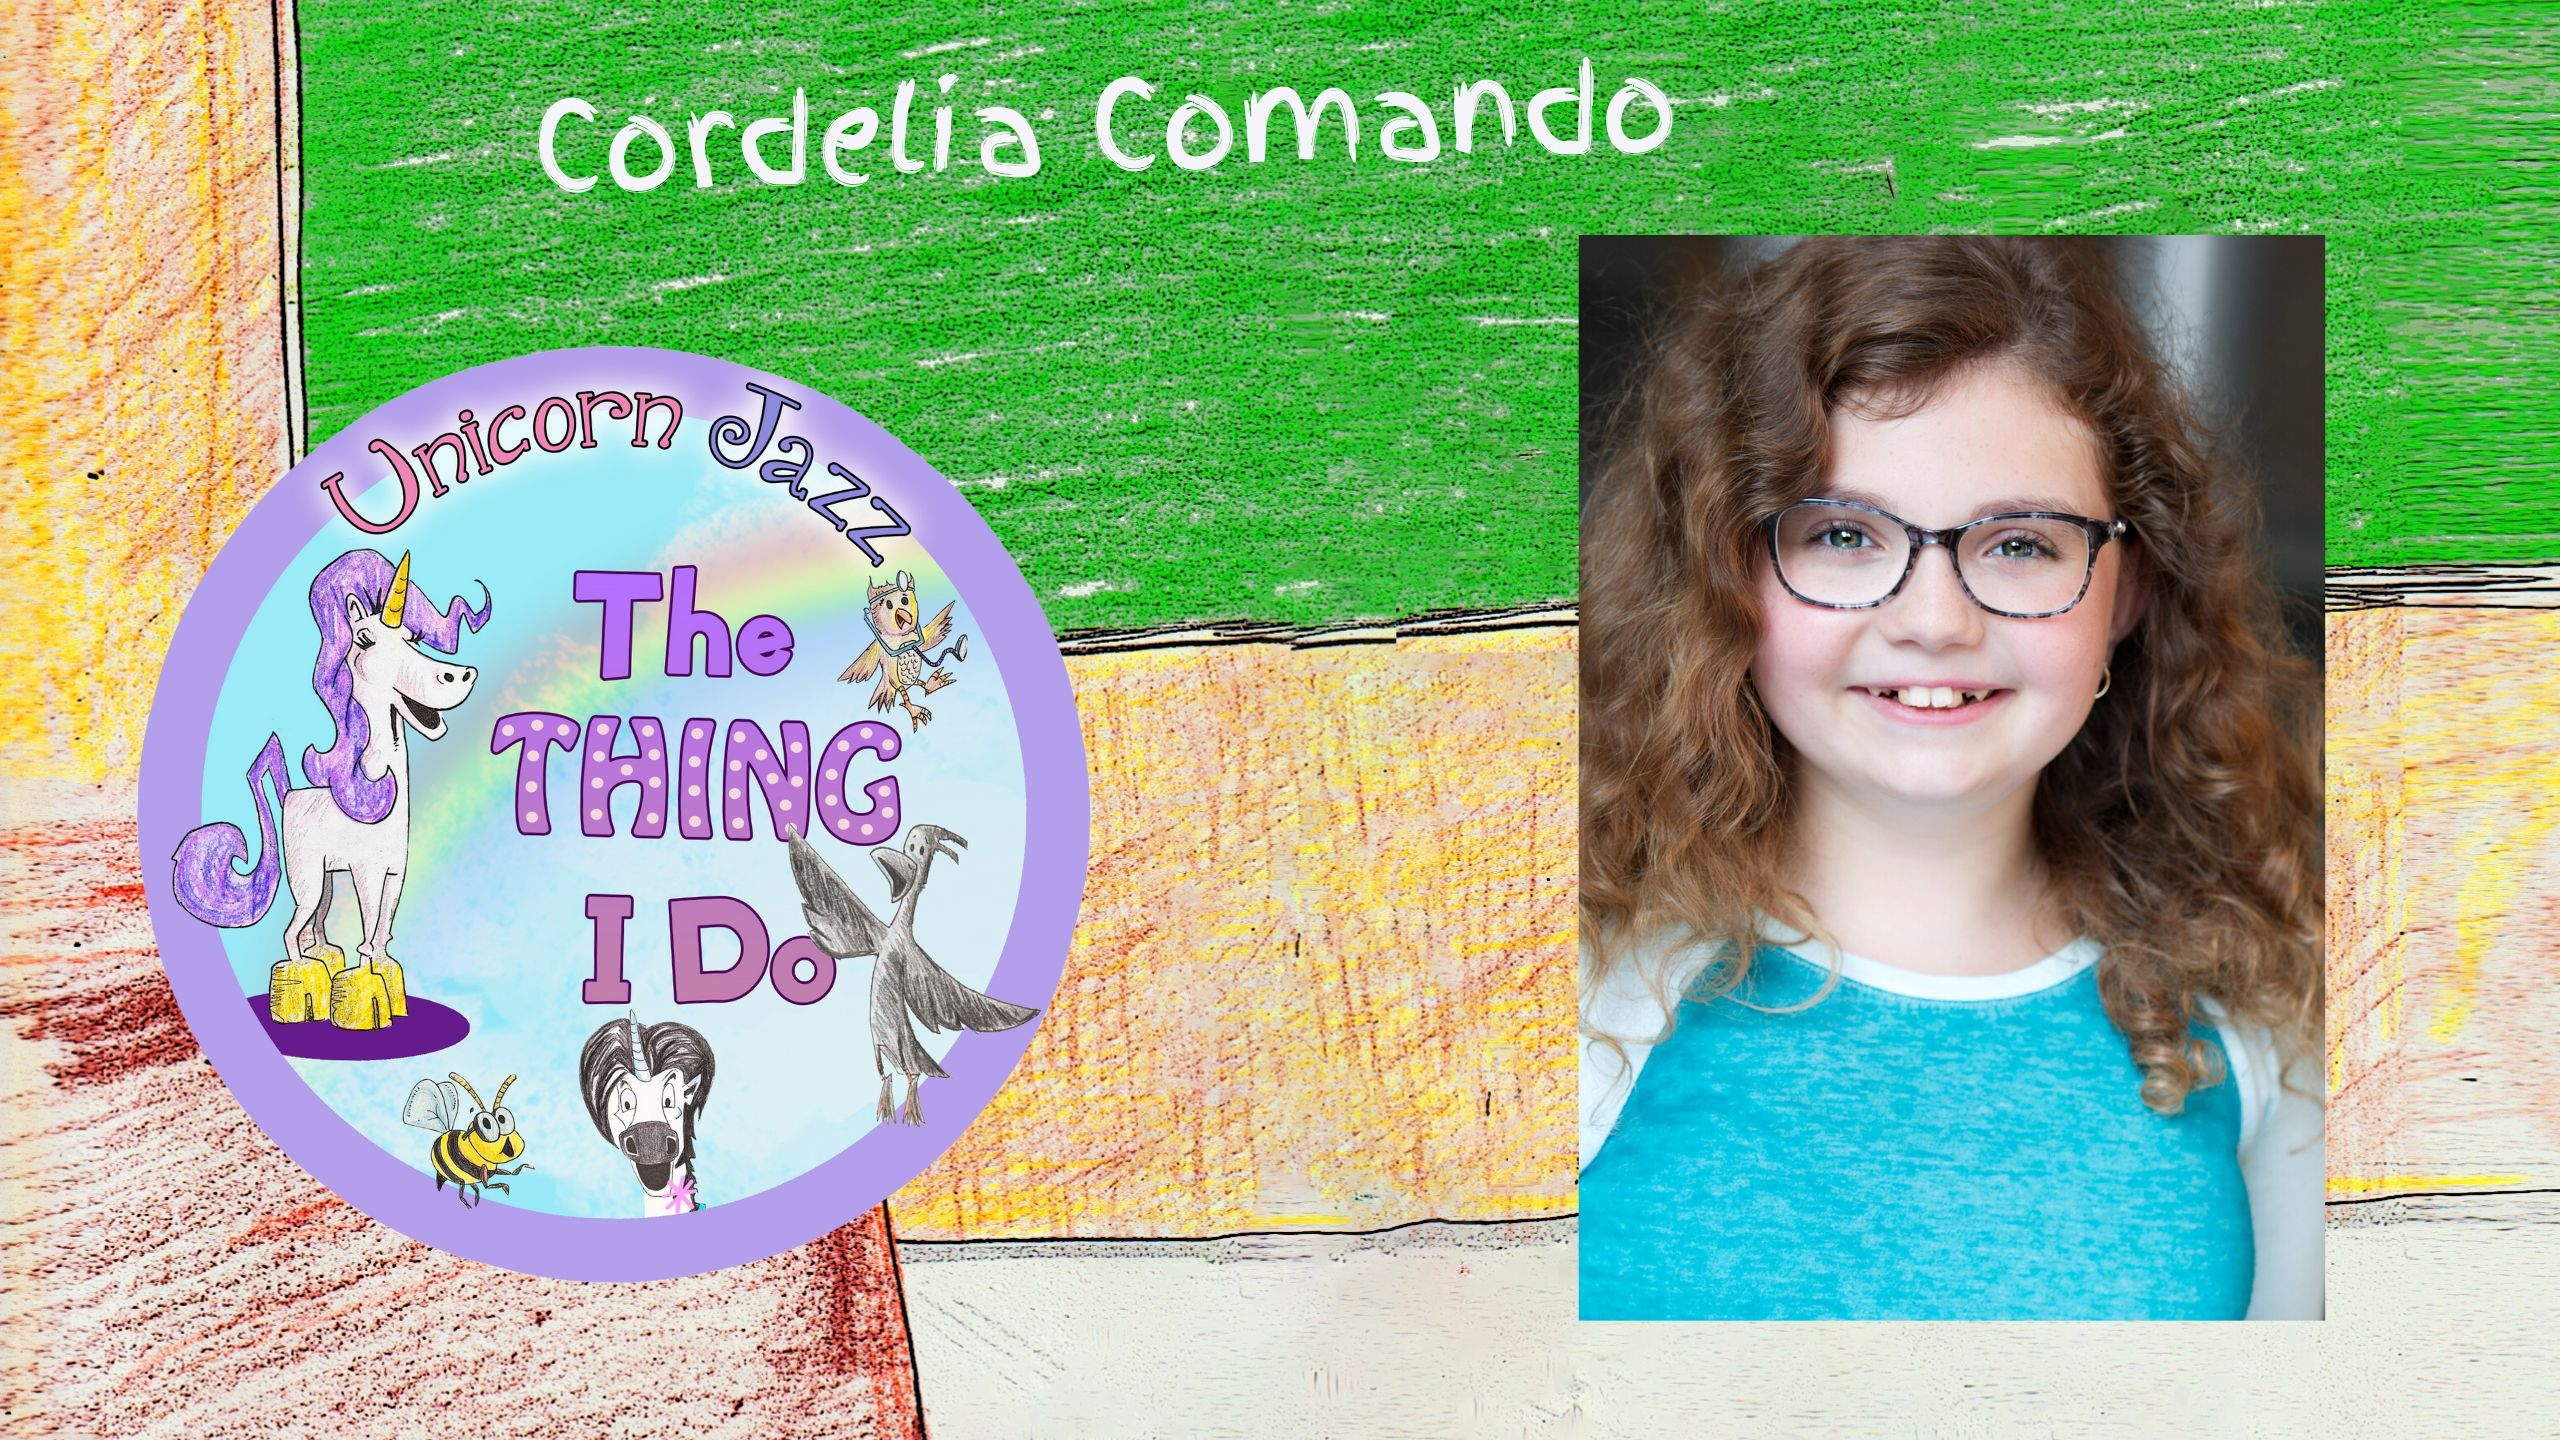 CHILD ACTOR AND SINGER Cordelia Comando